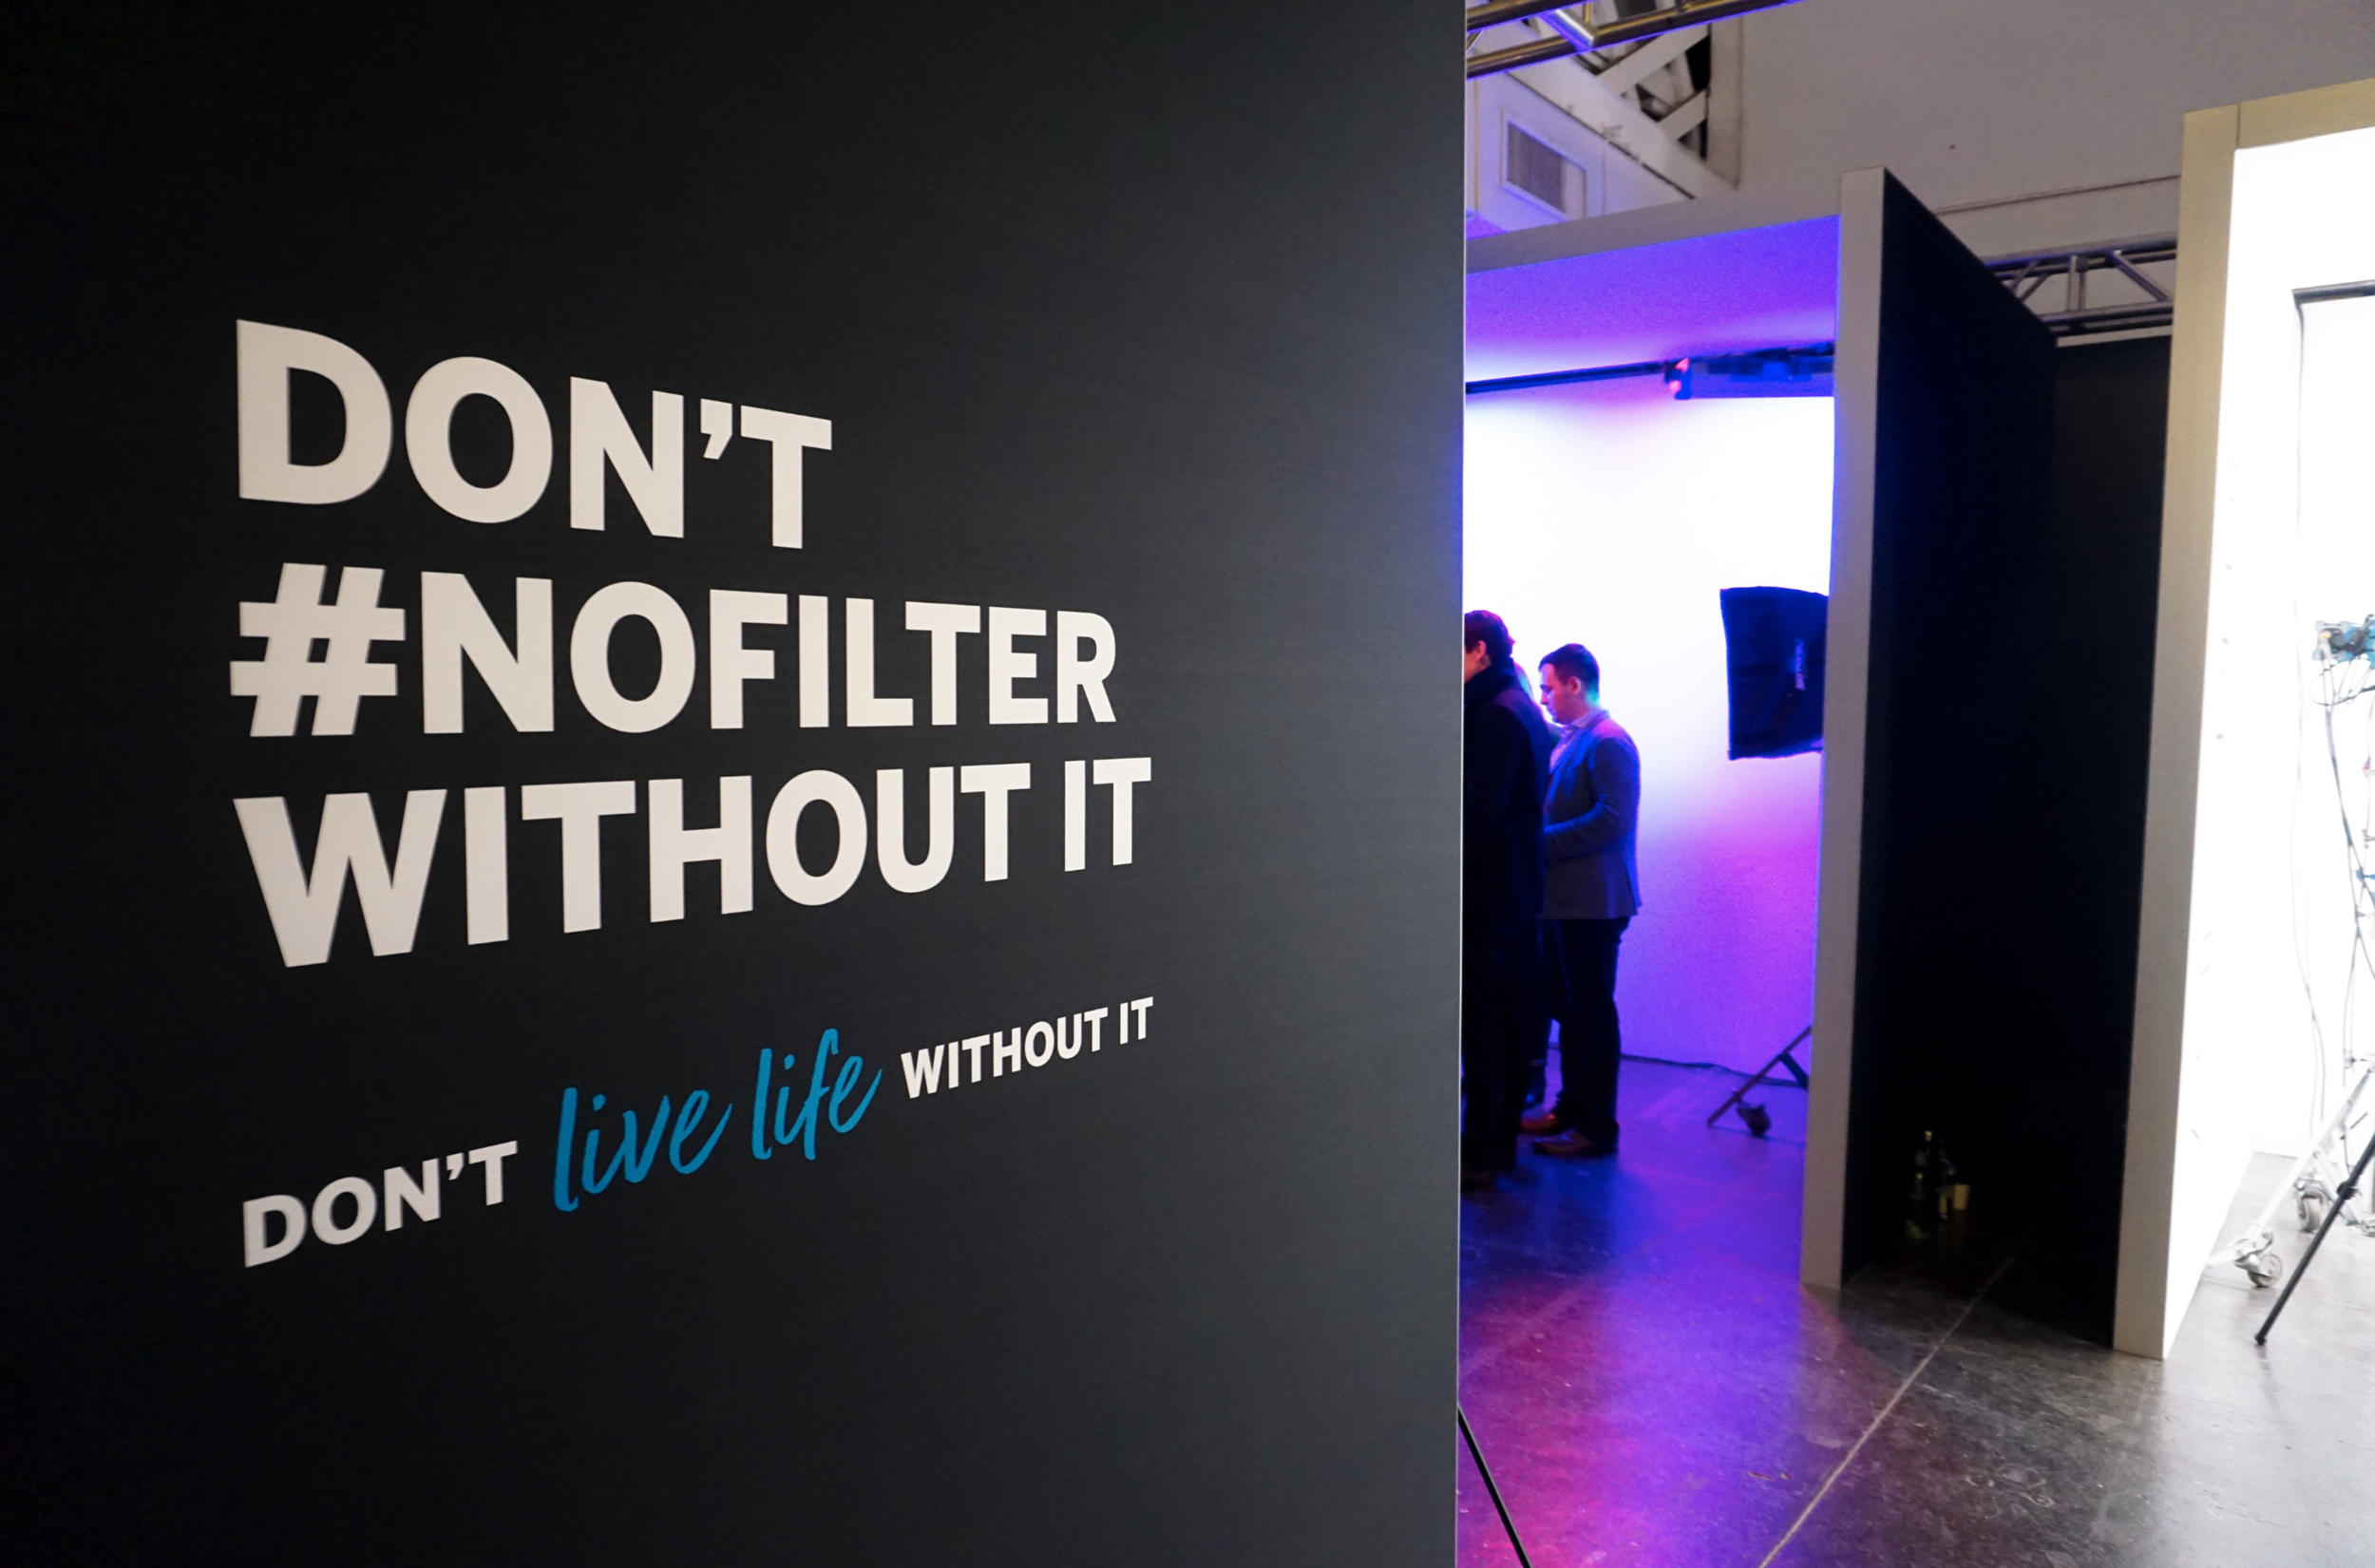 the #nofilter room celebrated real beautify by allowing consumers to take a natural picture without manipulating it on a given social channel with a filter.  We then simulated those filters through lighting so artistry was not compromised.